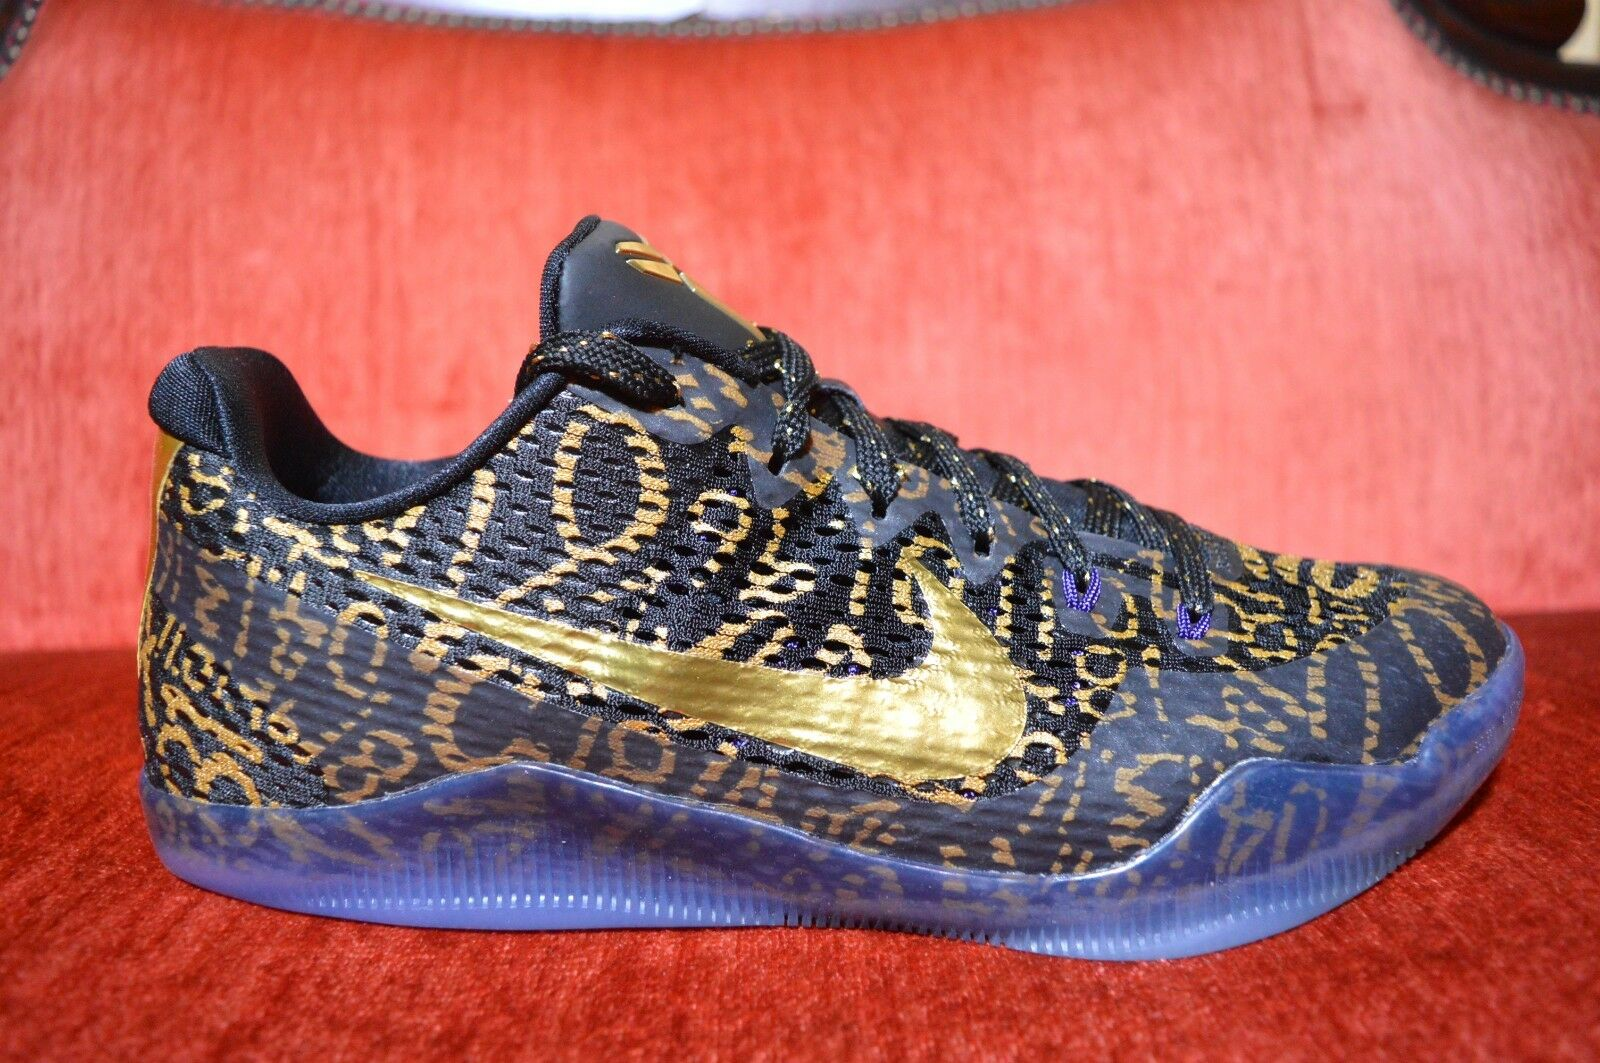 Neue nike mambacurial kobe xi 11 mamba tag qs - id mambacurial nike schwarzes gold in größe 10 865773-992 d89409